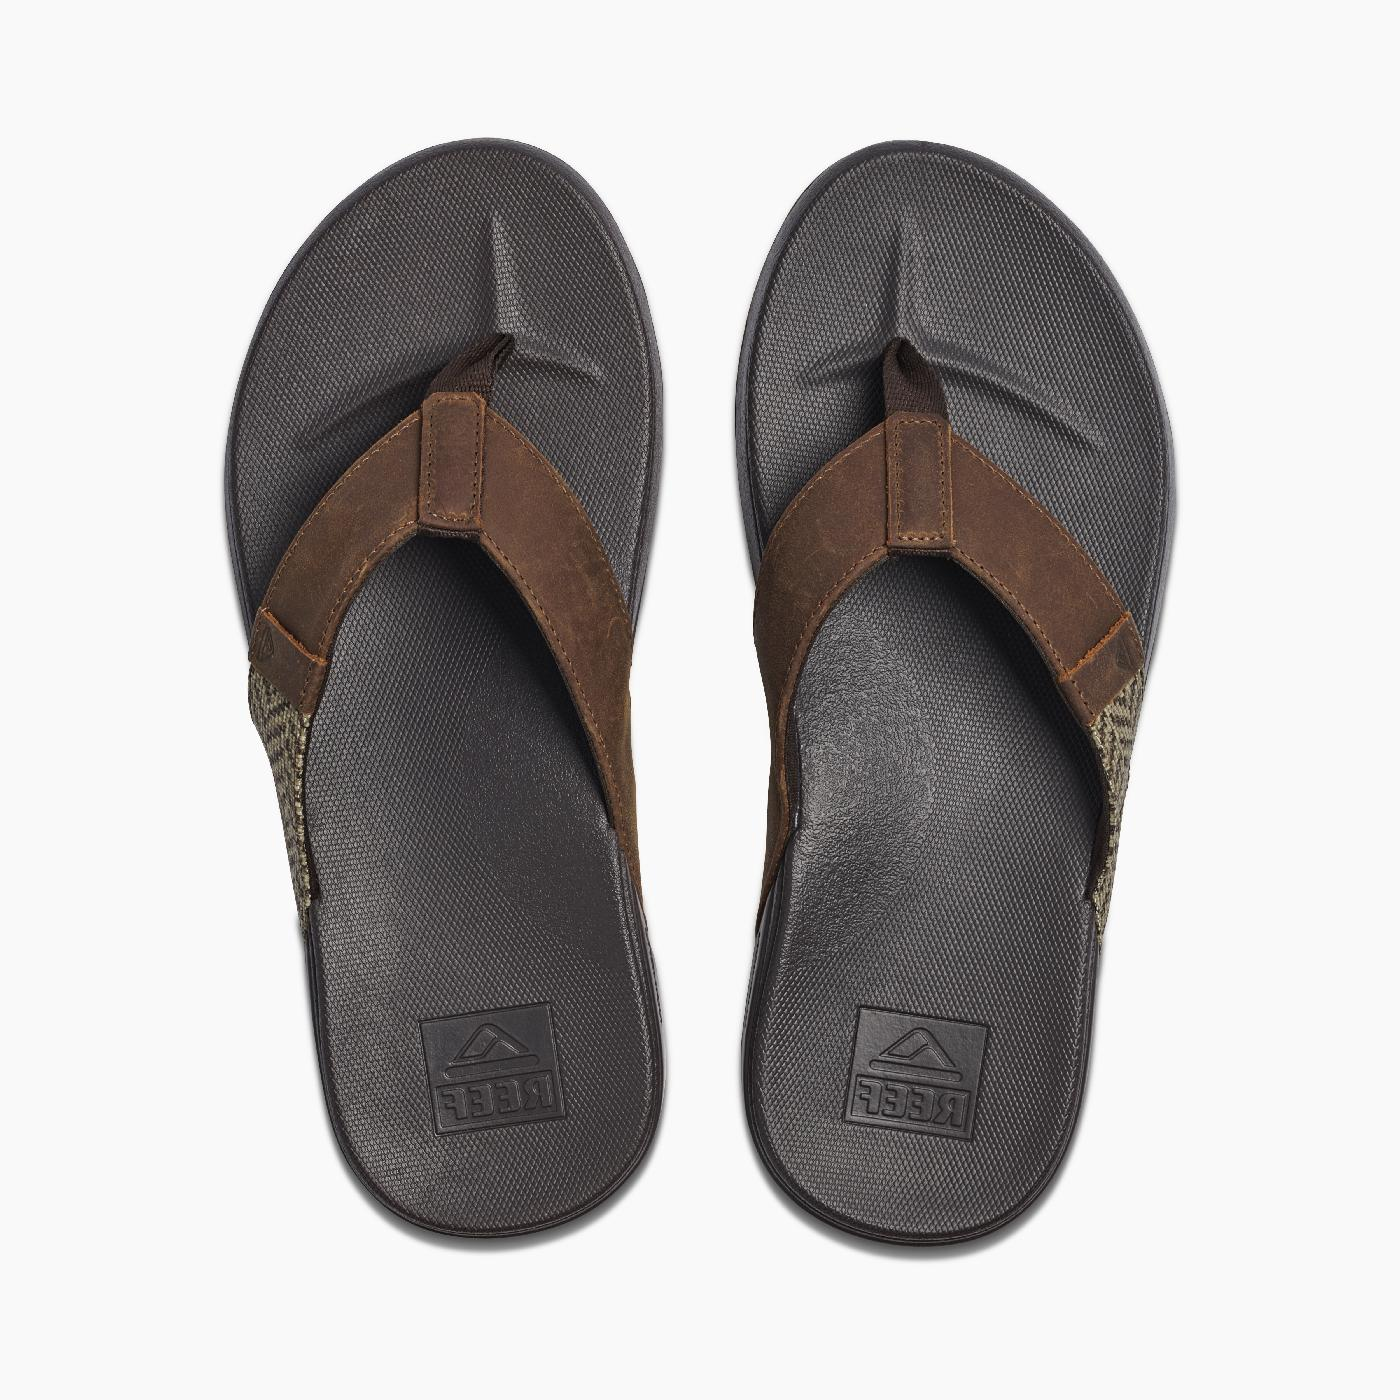 Reef Phantom SE Flops Brown/Tan NWT